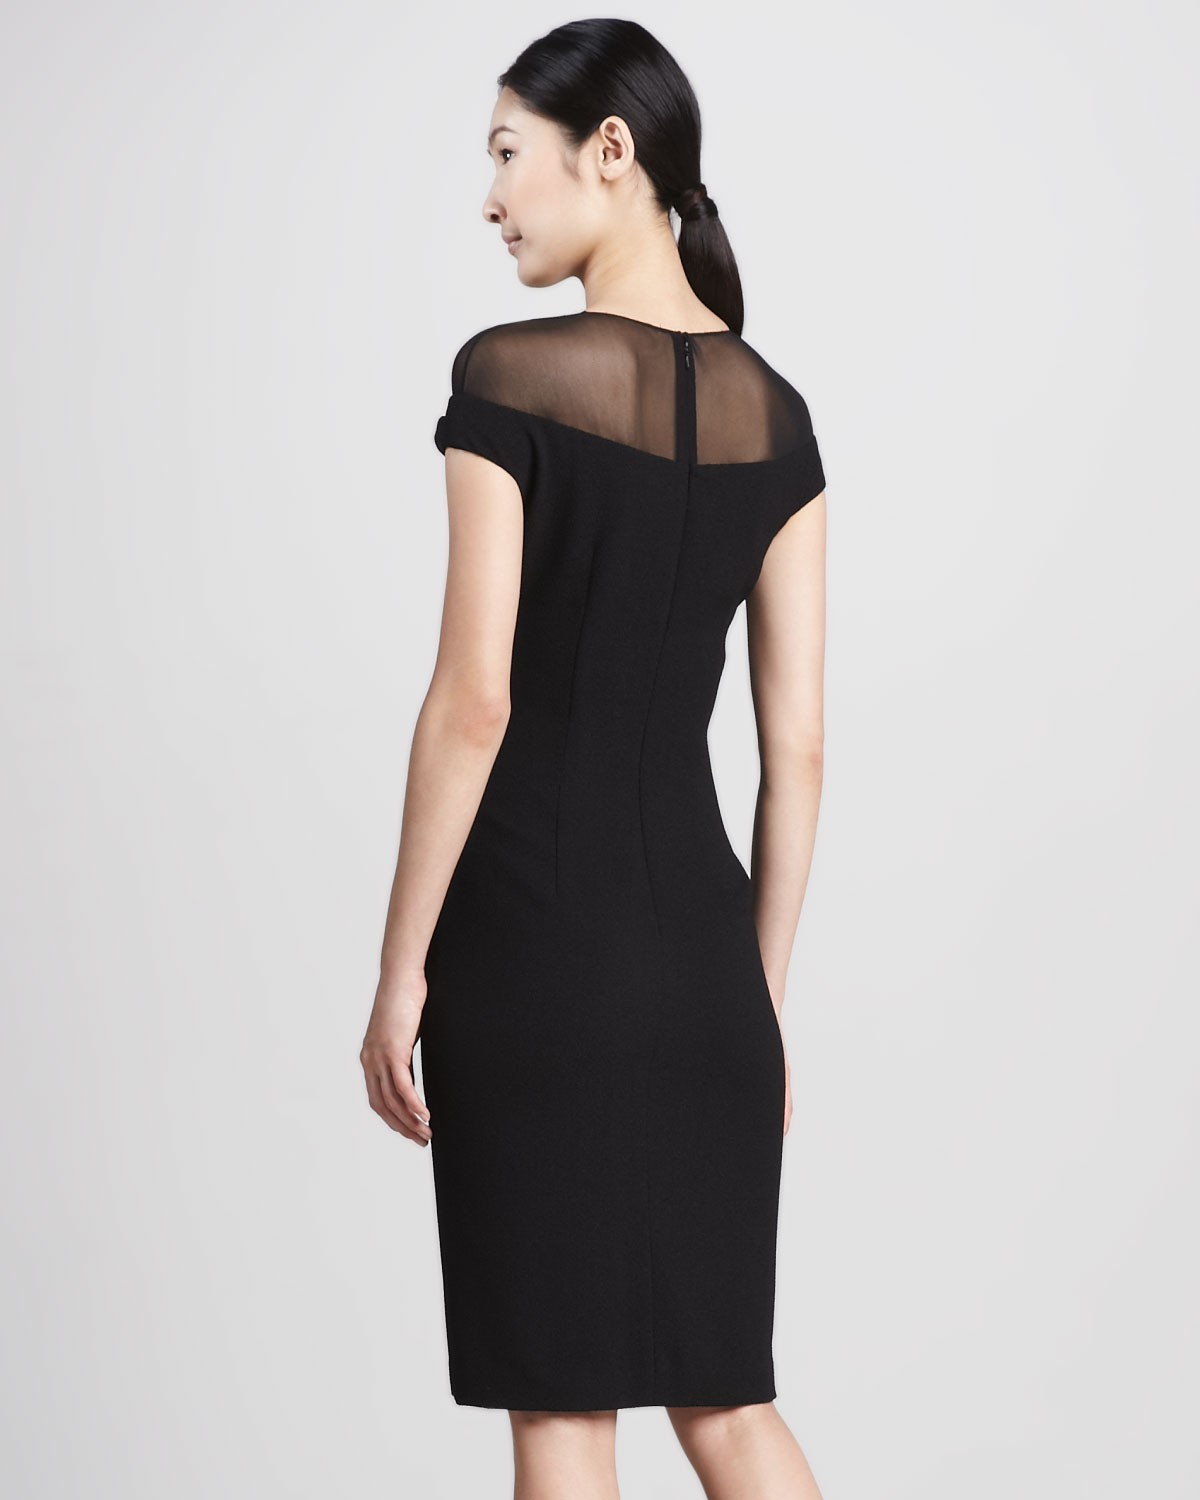 Black Illusion Dress: David Meister Illusiontop Cocktail Dress In Black